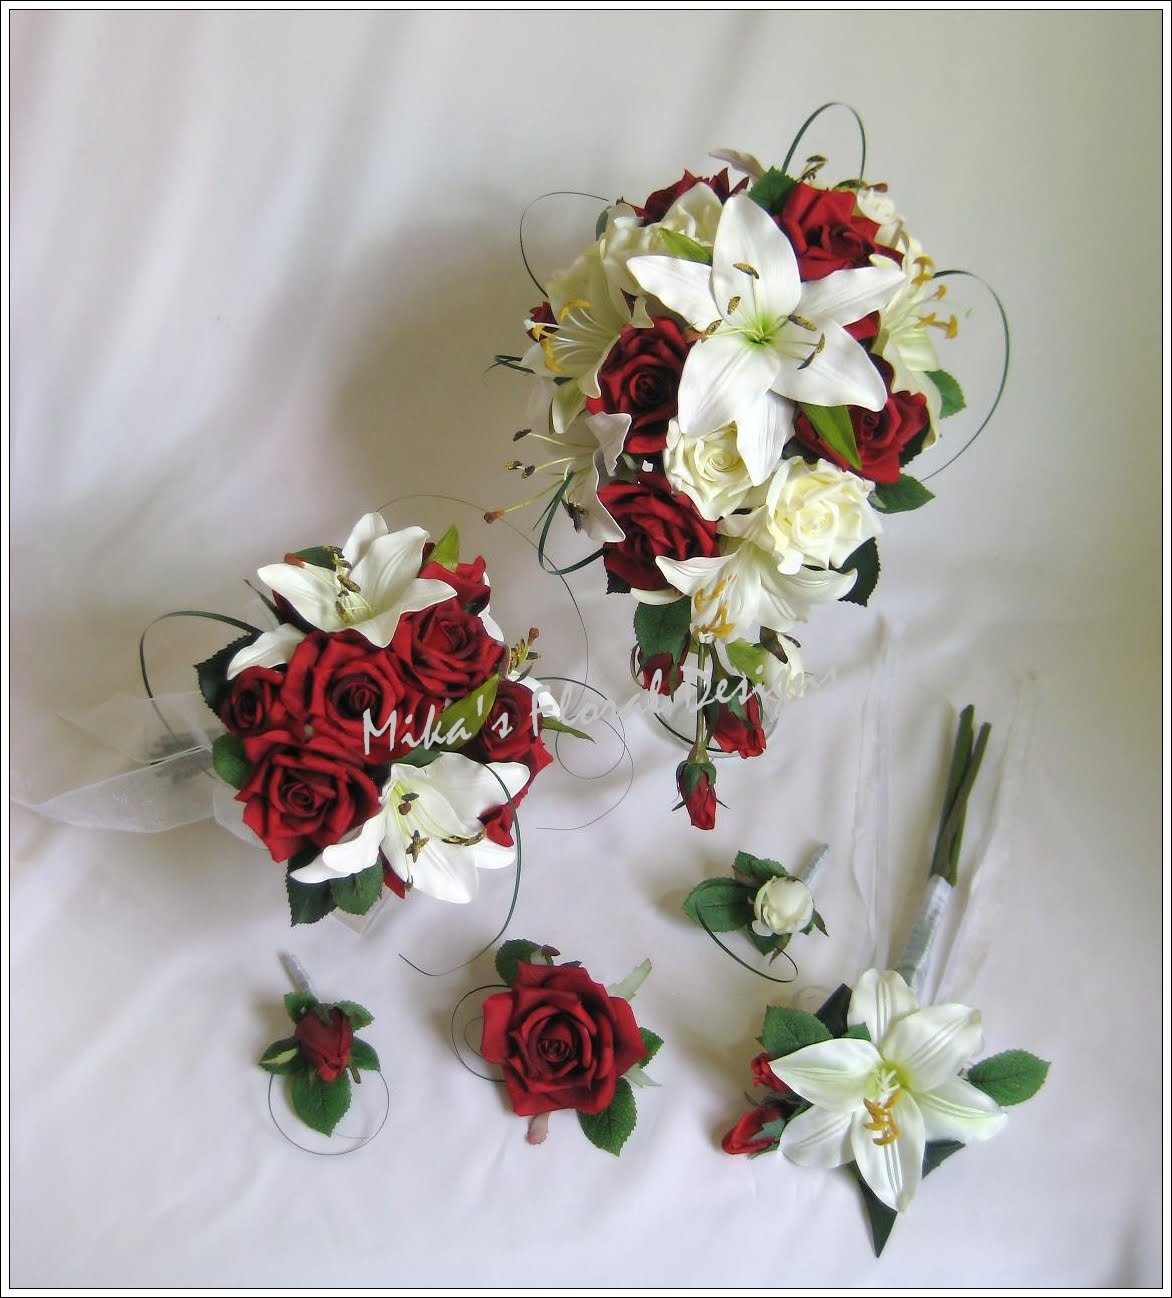 artificial wedding flowers and bouquets australia 01 04 10 01 05 10. Black Bedroom Furniture Sets. Home Design Ideas